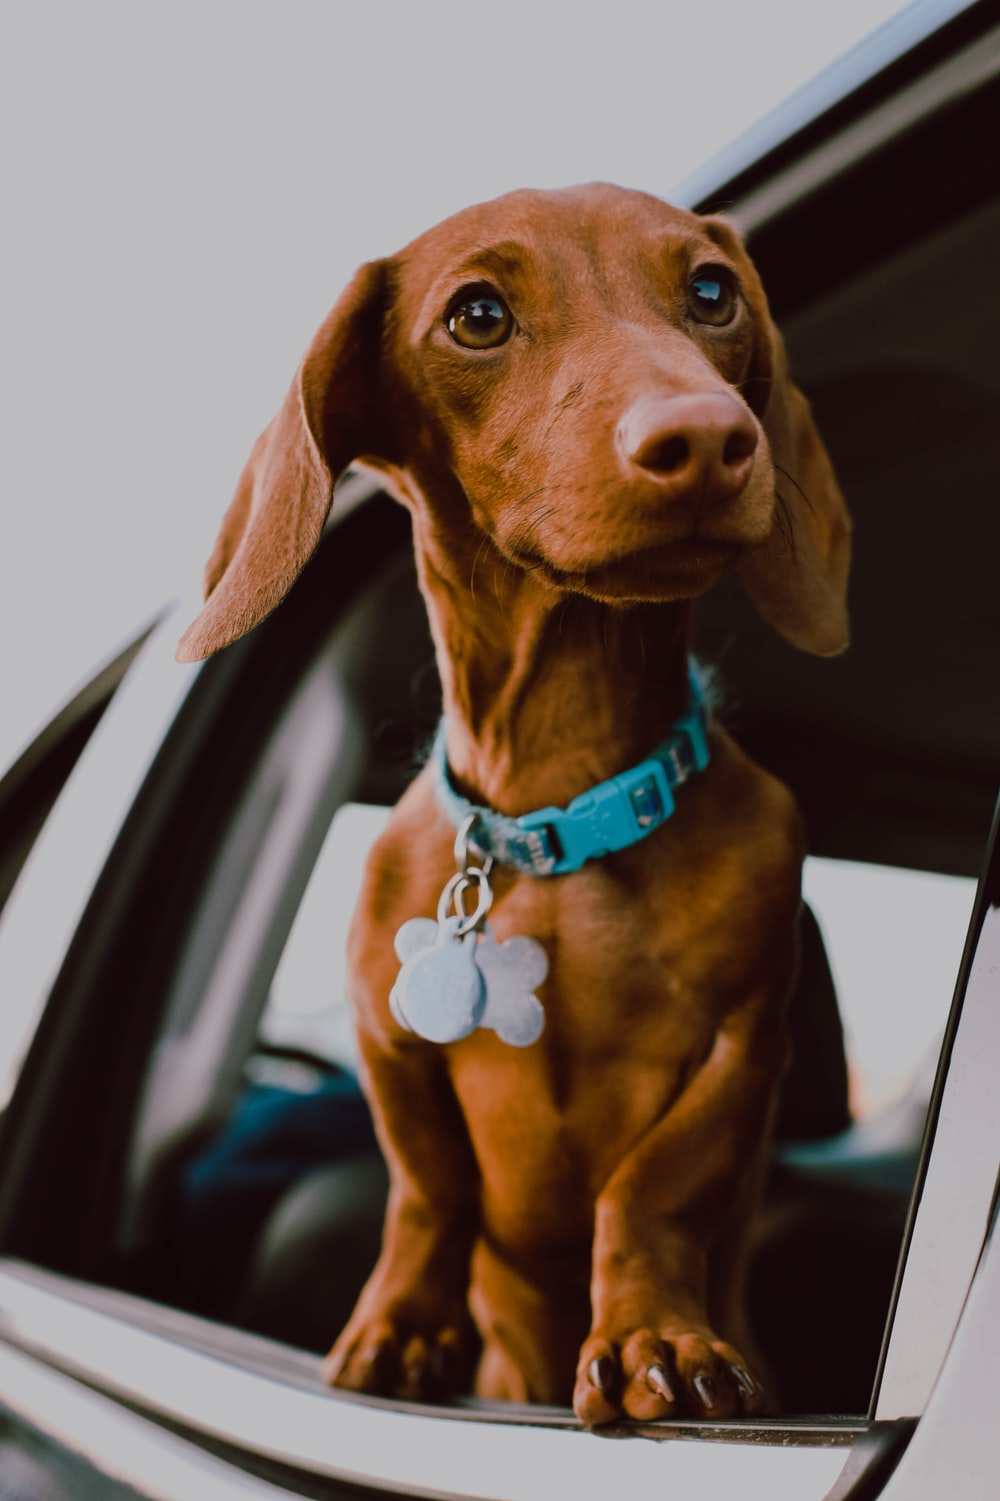 brown dog in window car with a blue collar and tags for identification